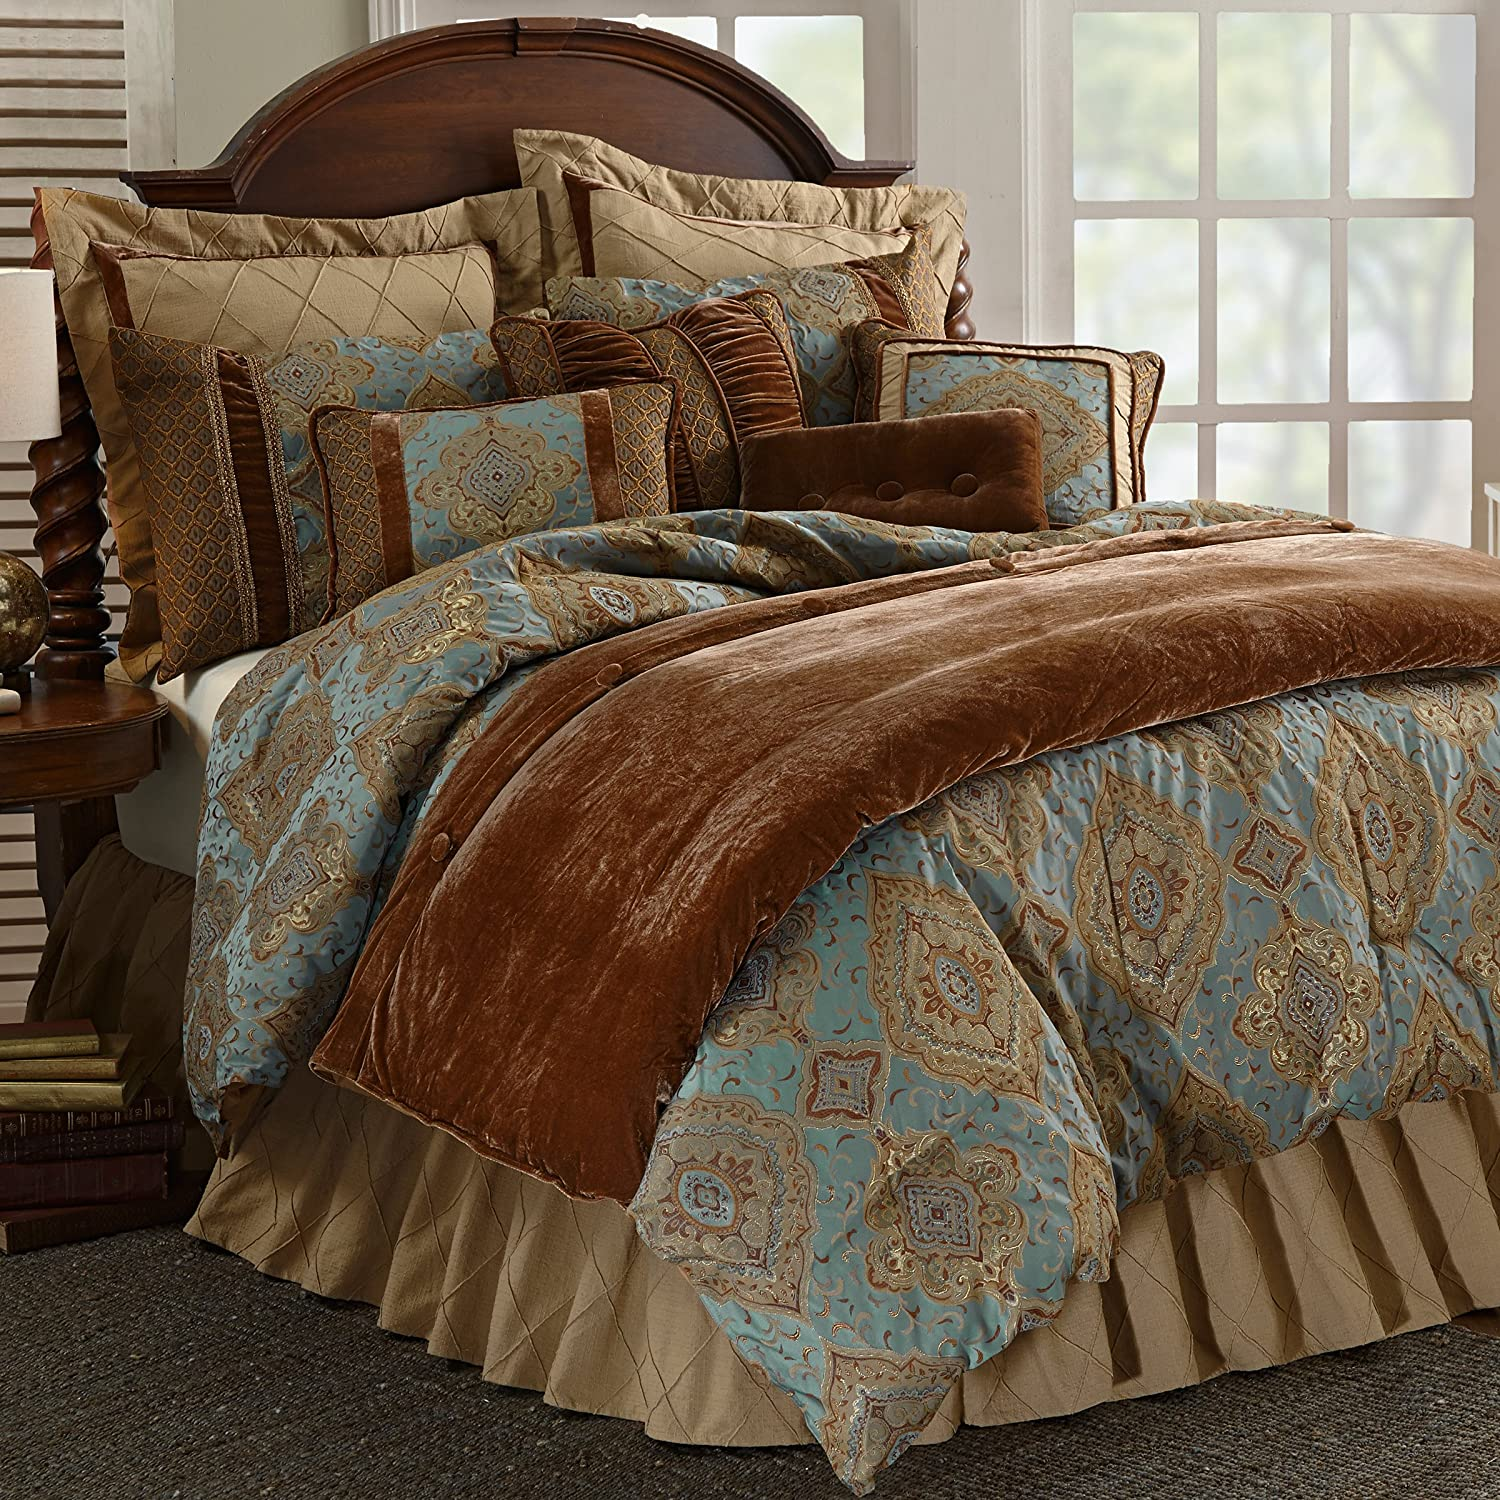 j southwest montaneros by bedding set pin rust new queen striped york comforter